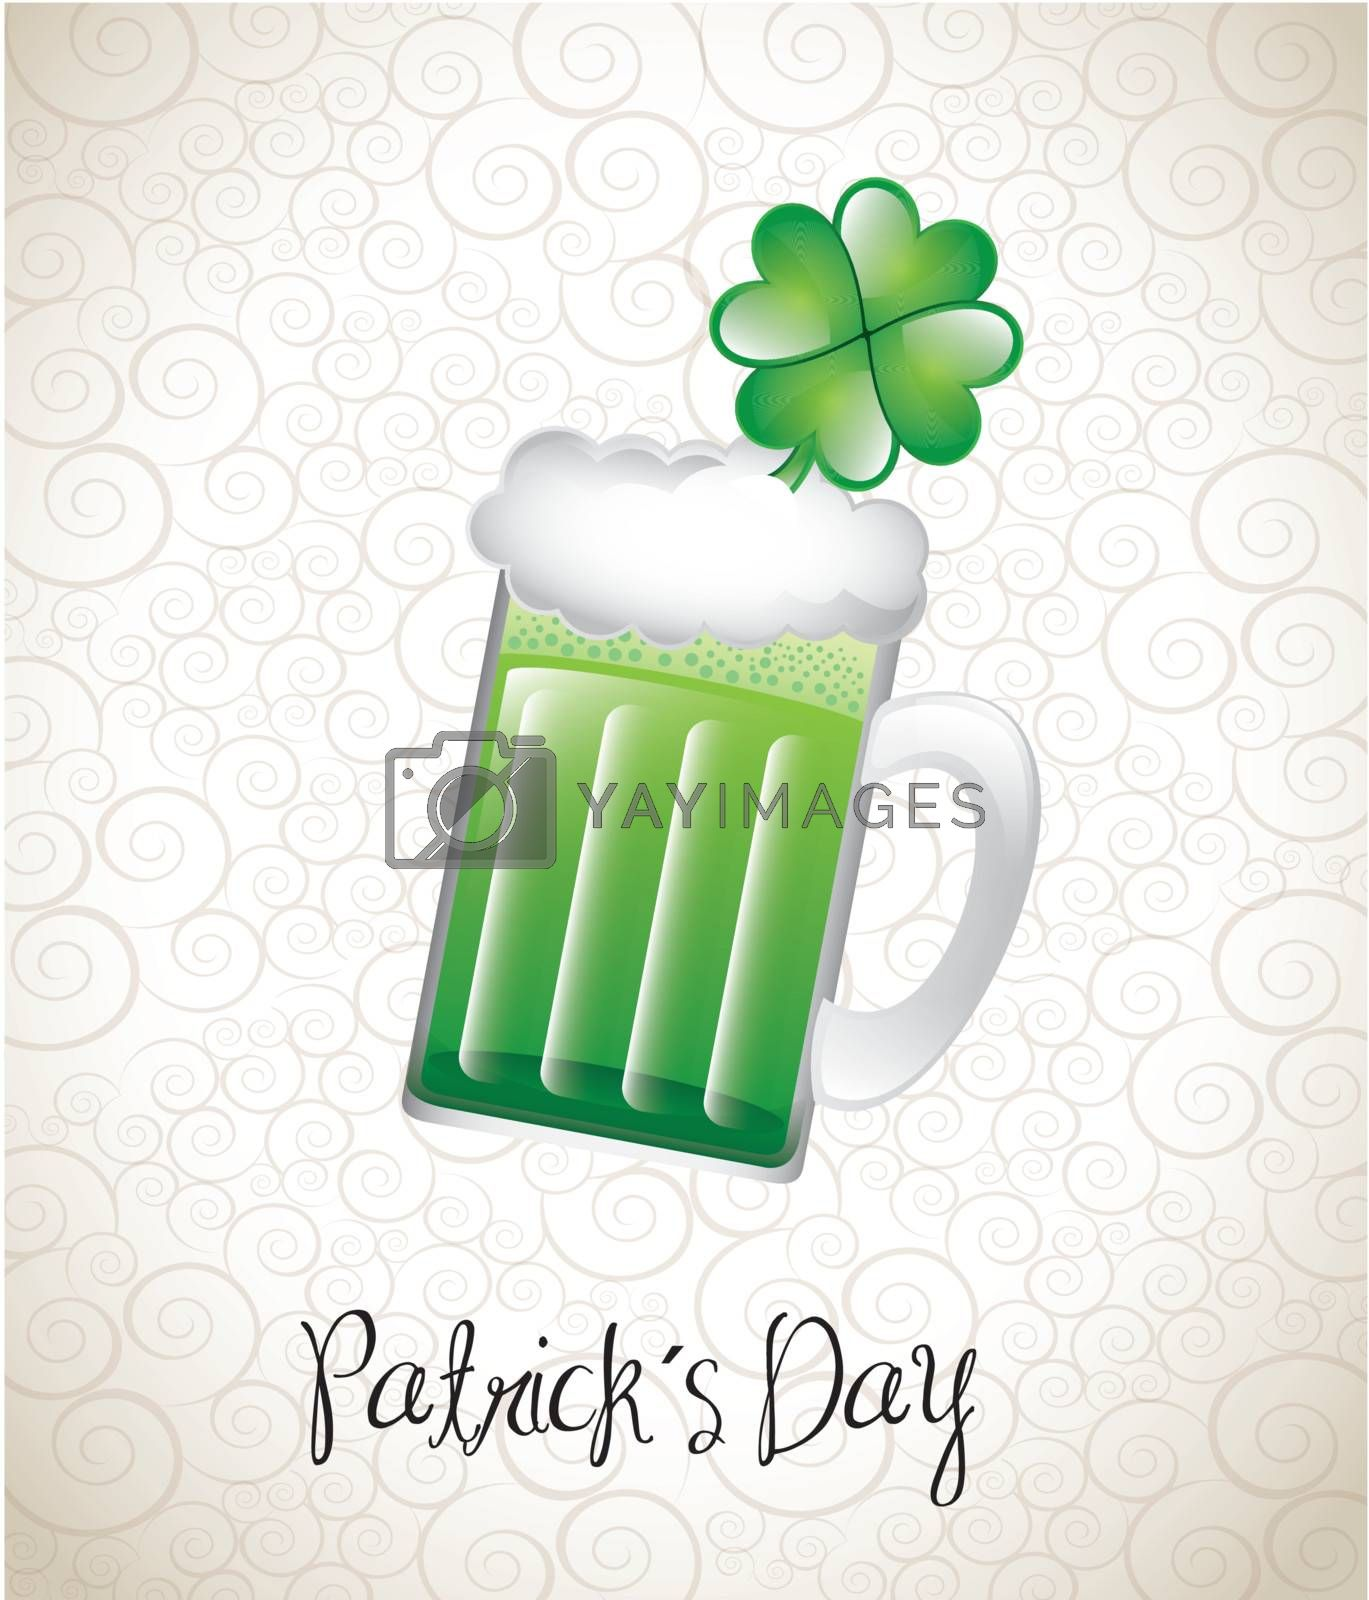 Patricks day over vintage background vector illustration